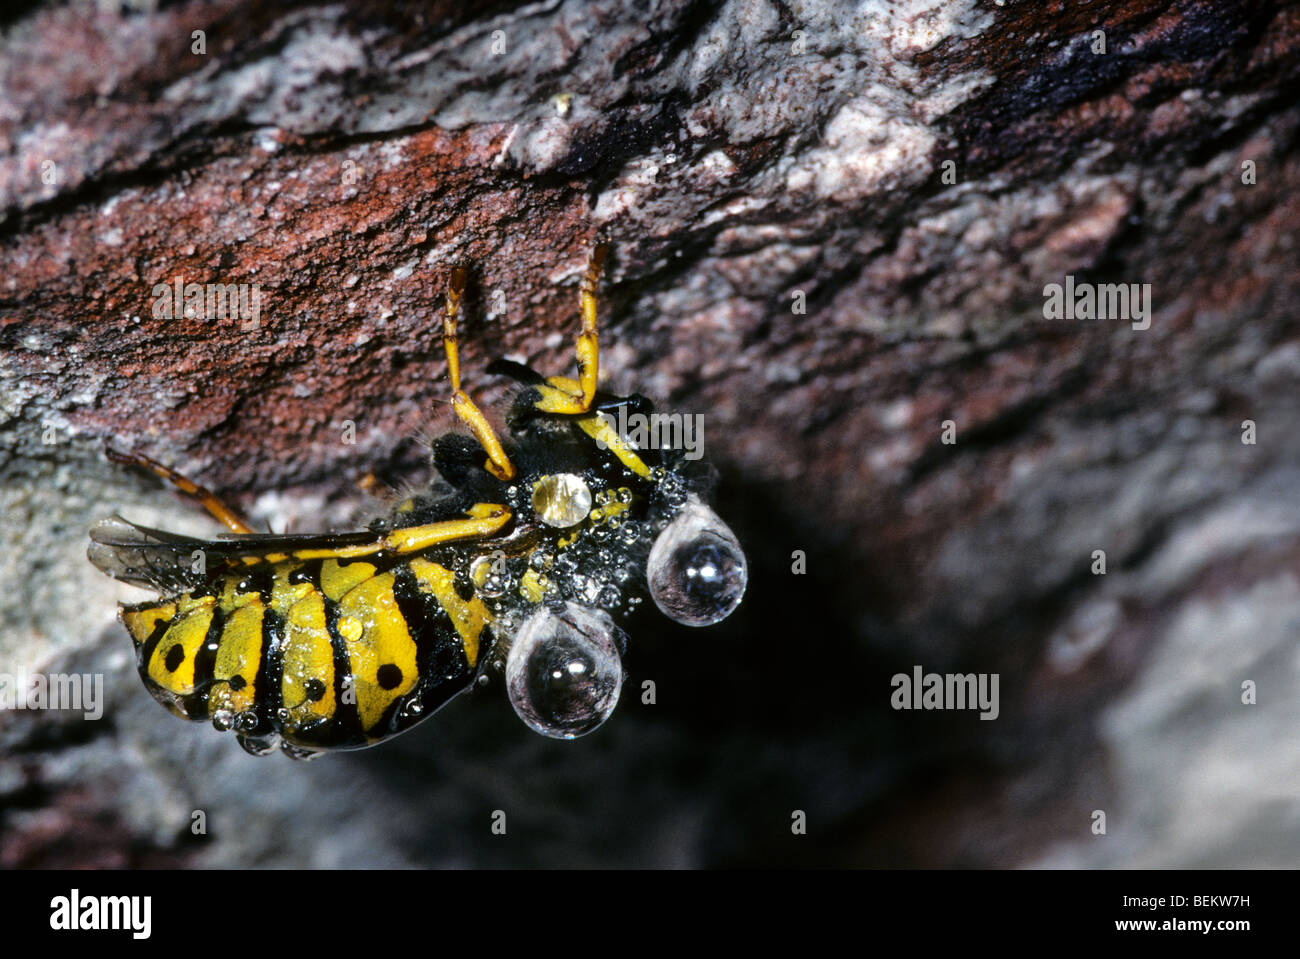 Wasp (Vespidae), hibernating in icehouse, covered in dew - Stock Image